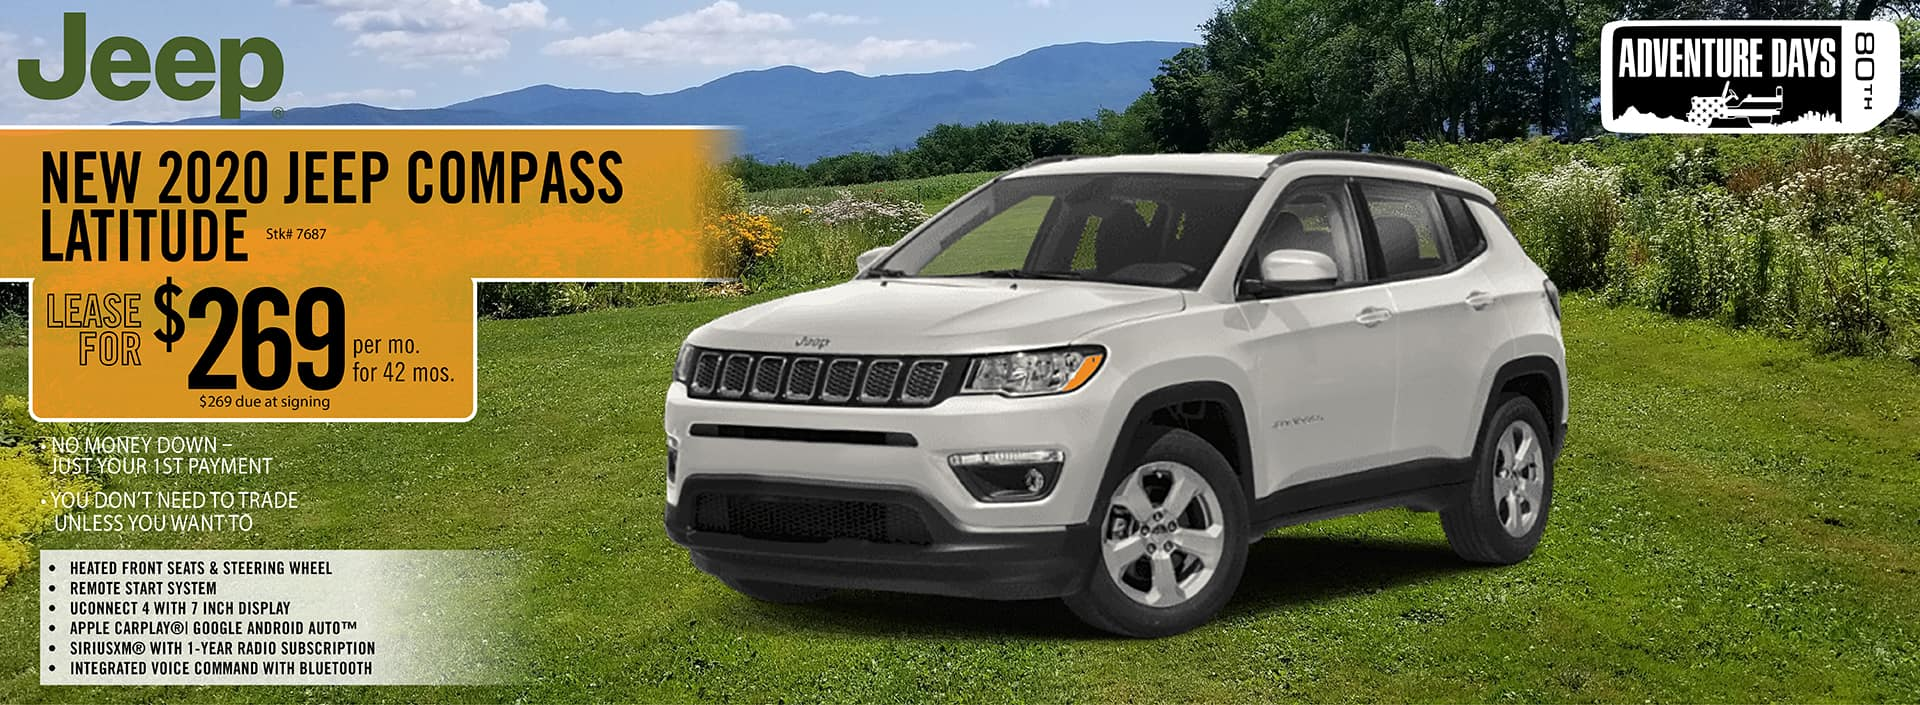 2020 Jeep Compass lease deal $269 for 42 months | Barre, VT